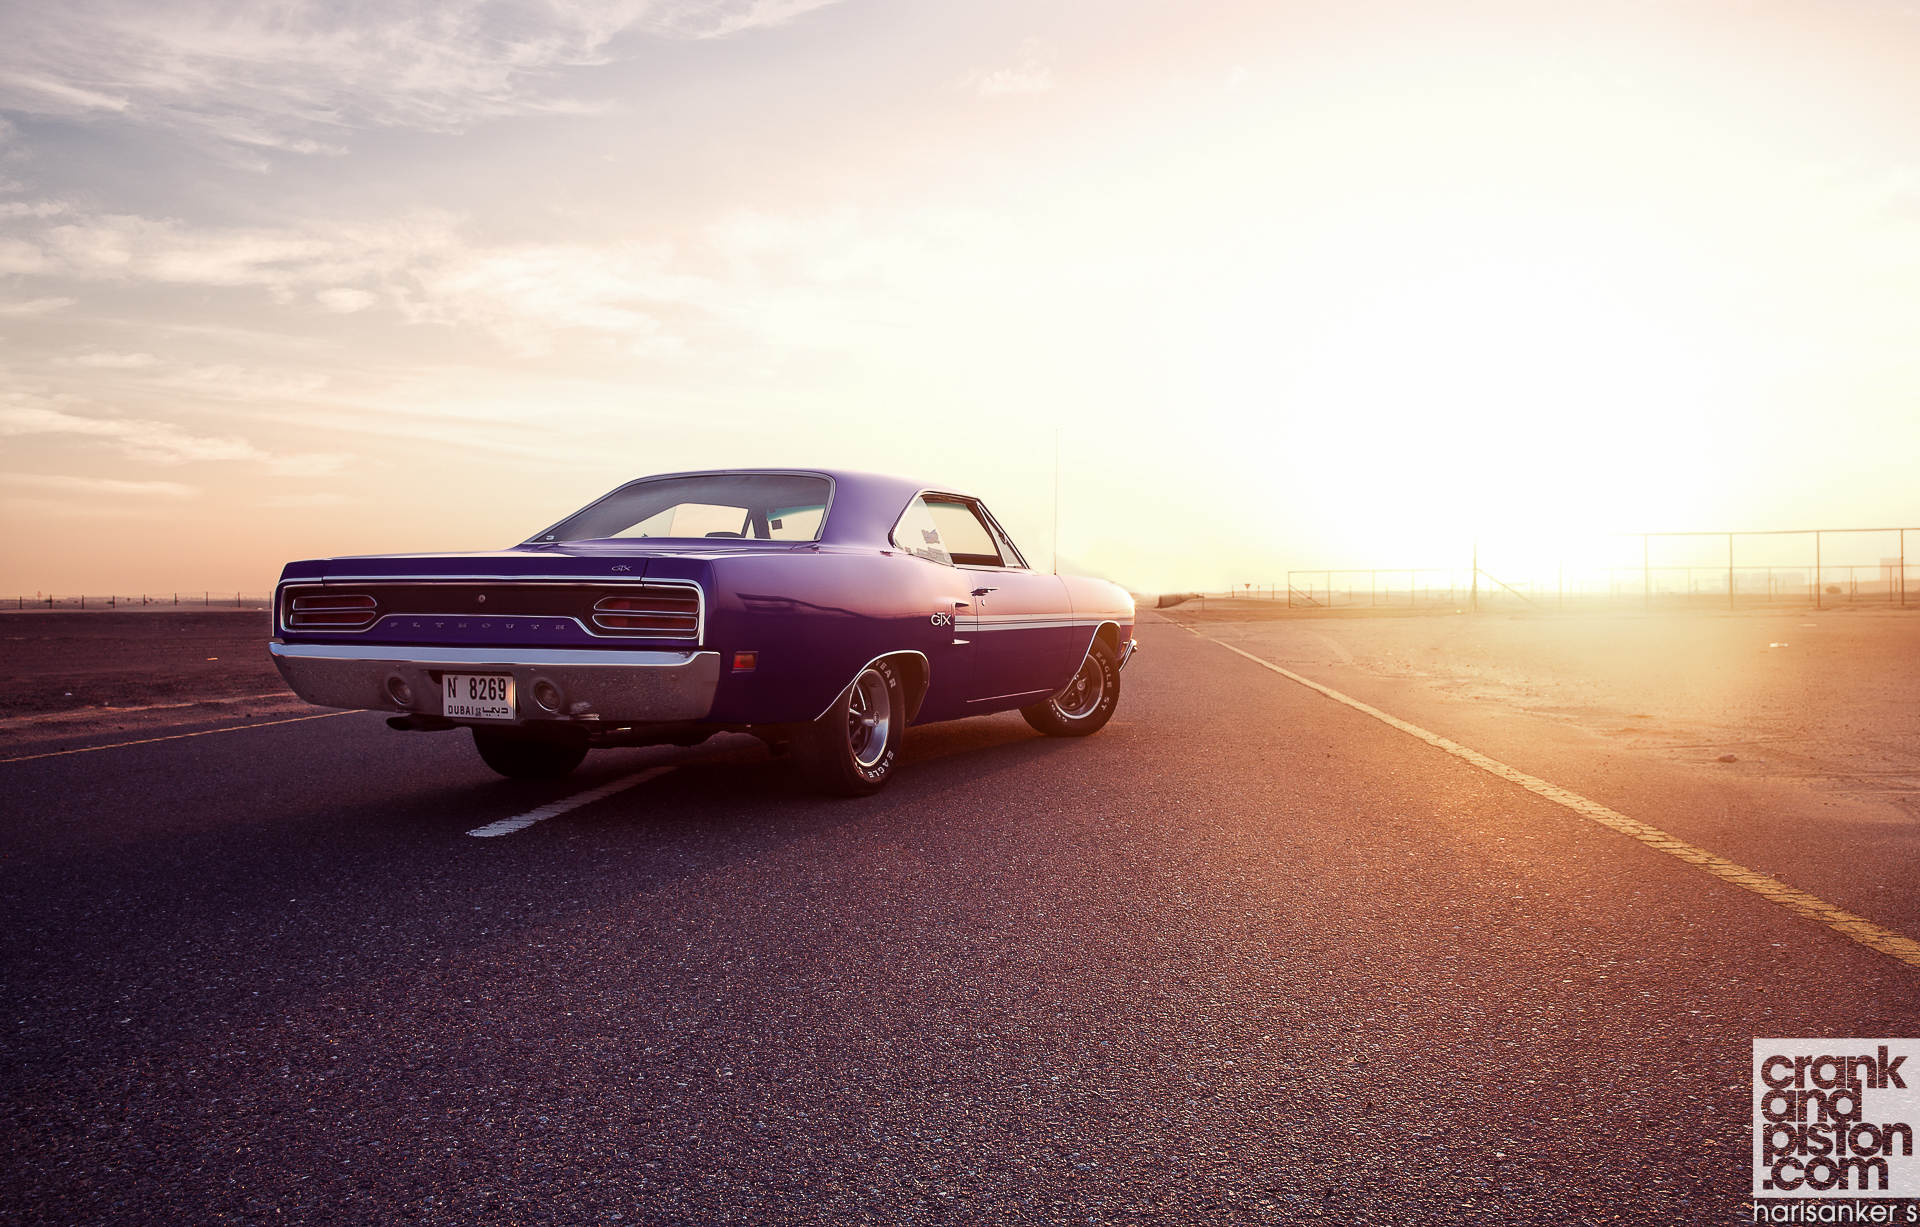 Fast And Furious 1 Cars Wallpapers 1970 Plymouth Gtx Set 1 Crankandpiston Com